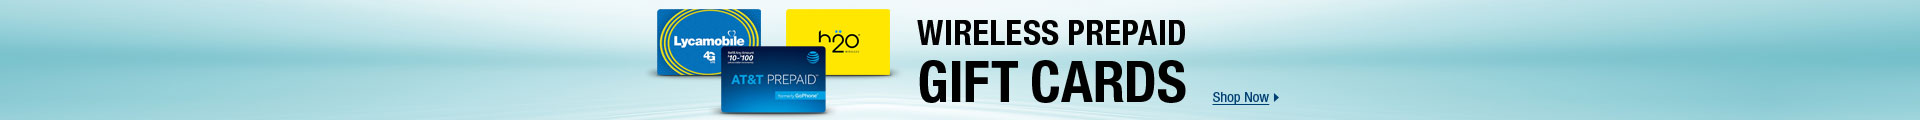 Wireless Prepaid Gift Cards